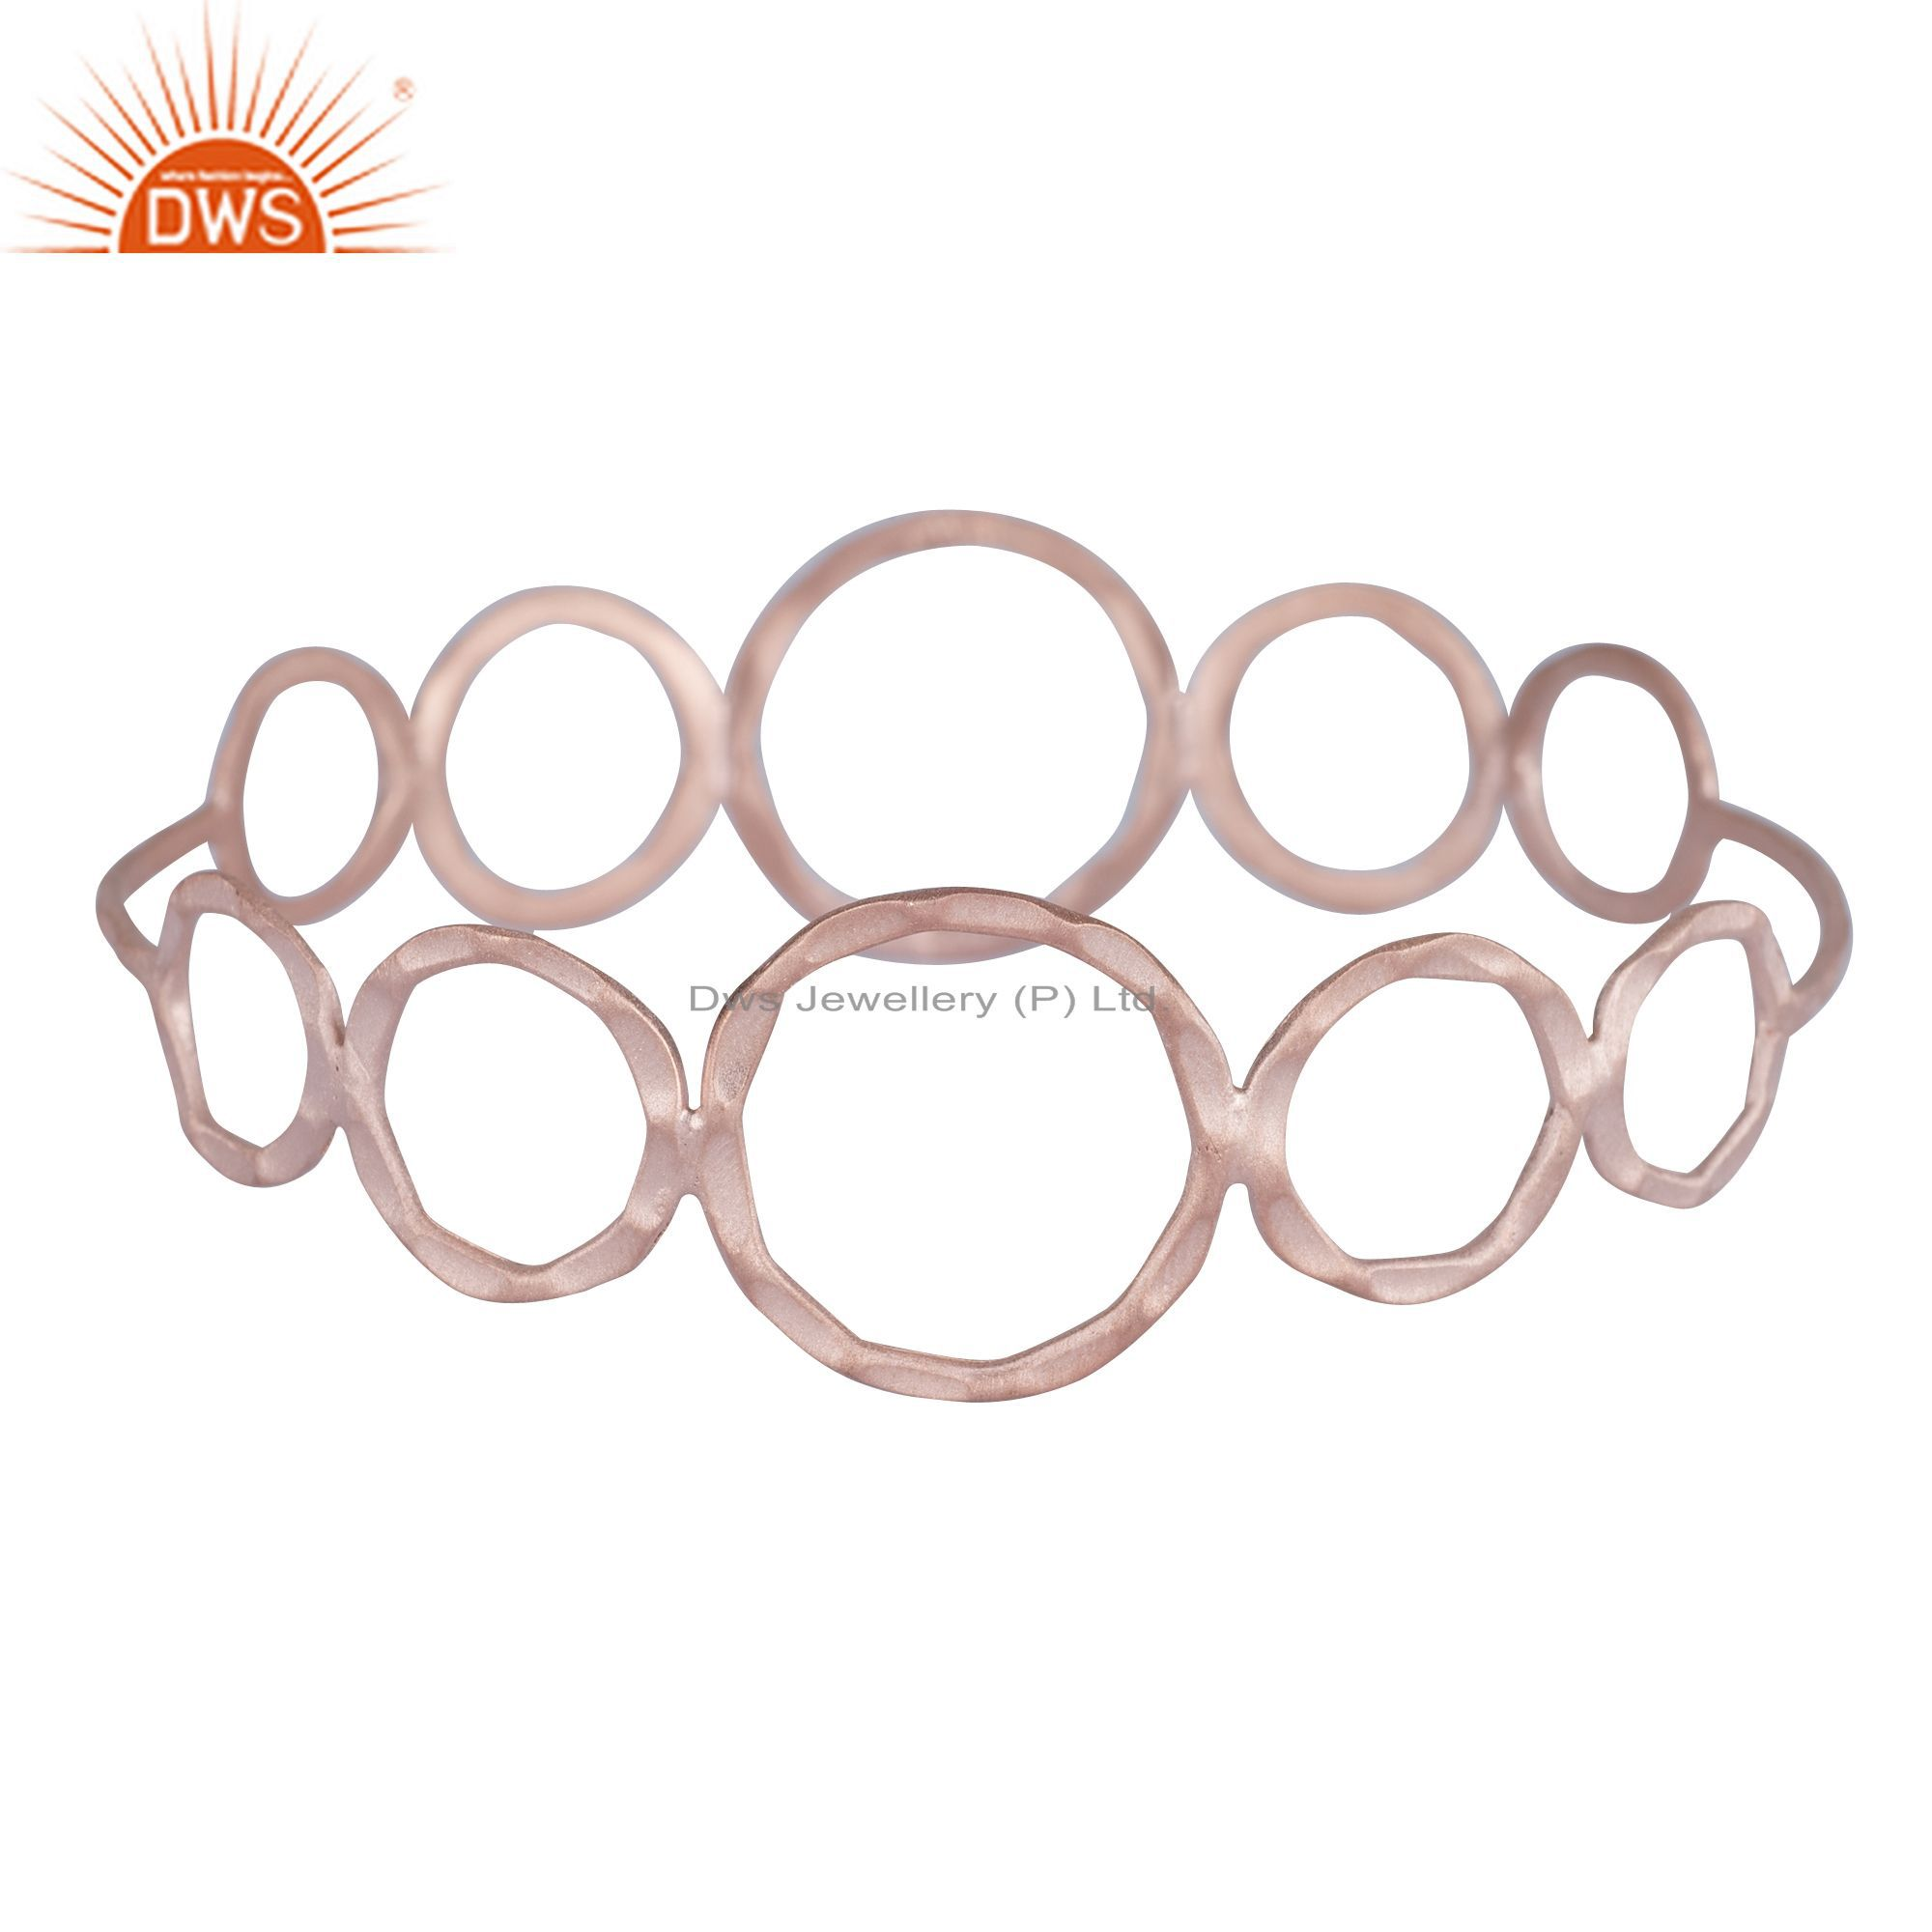 18k rose gold plated sterling silver hammered open circle bangle